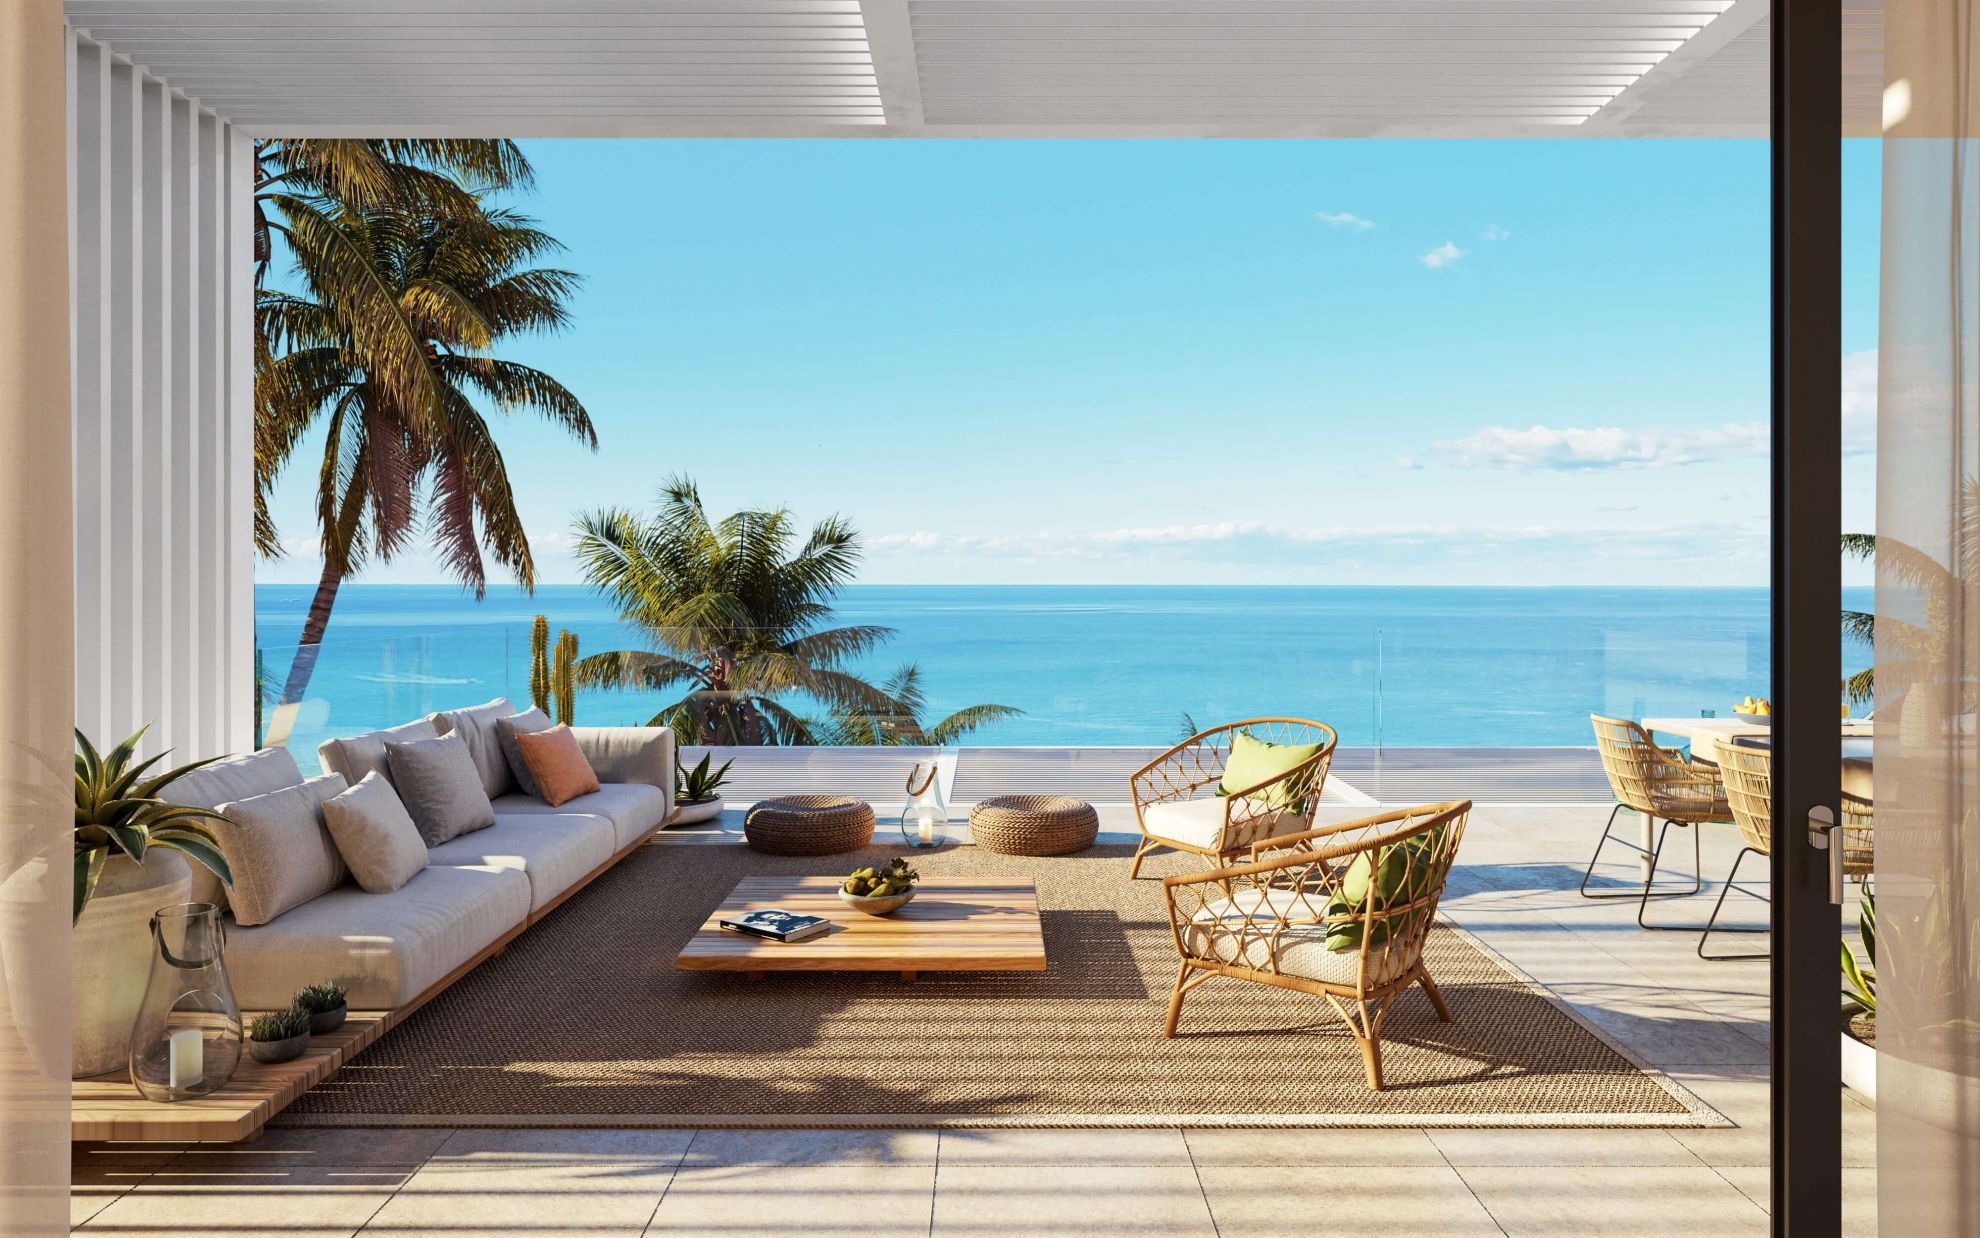 2 and 3 bedroom penthouse-style apartments with big terraces overlookg the sea. House 23 32